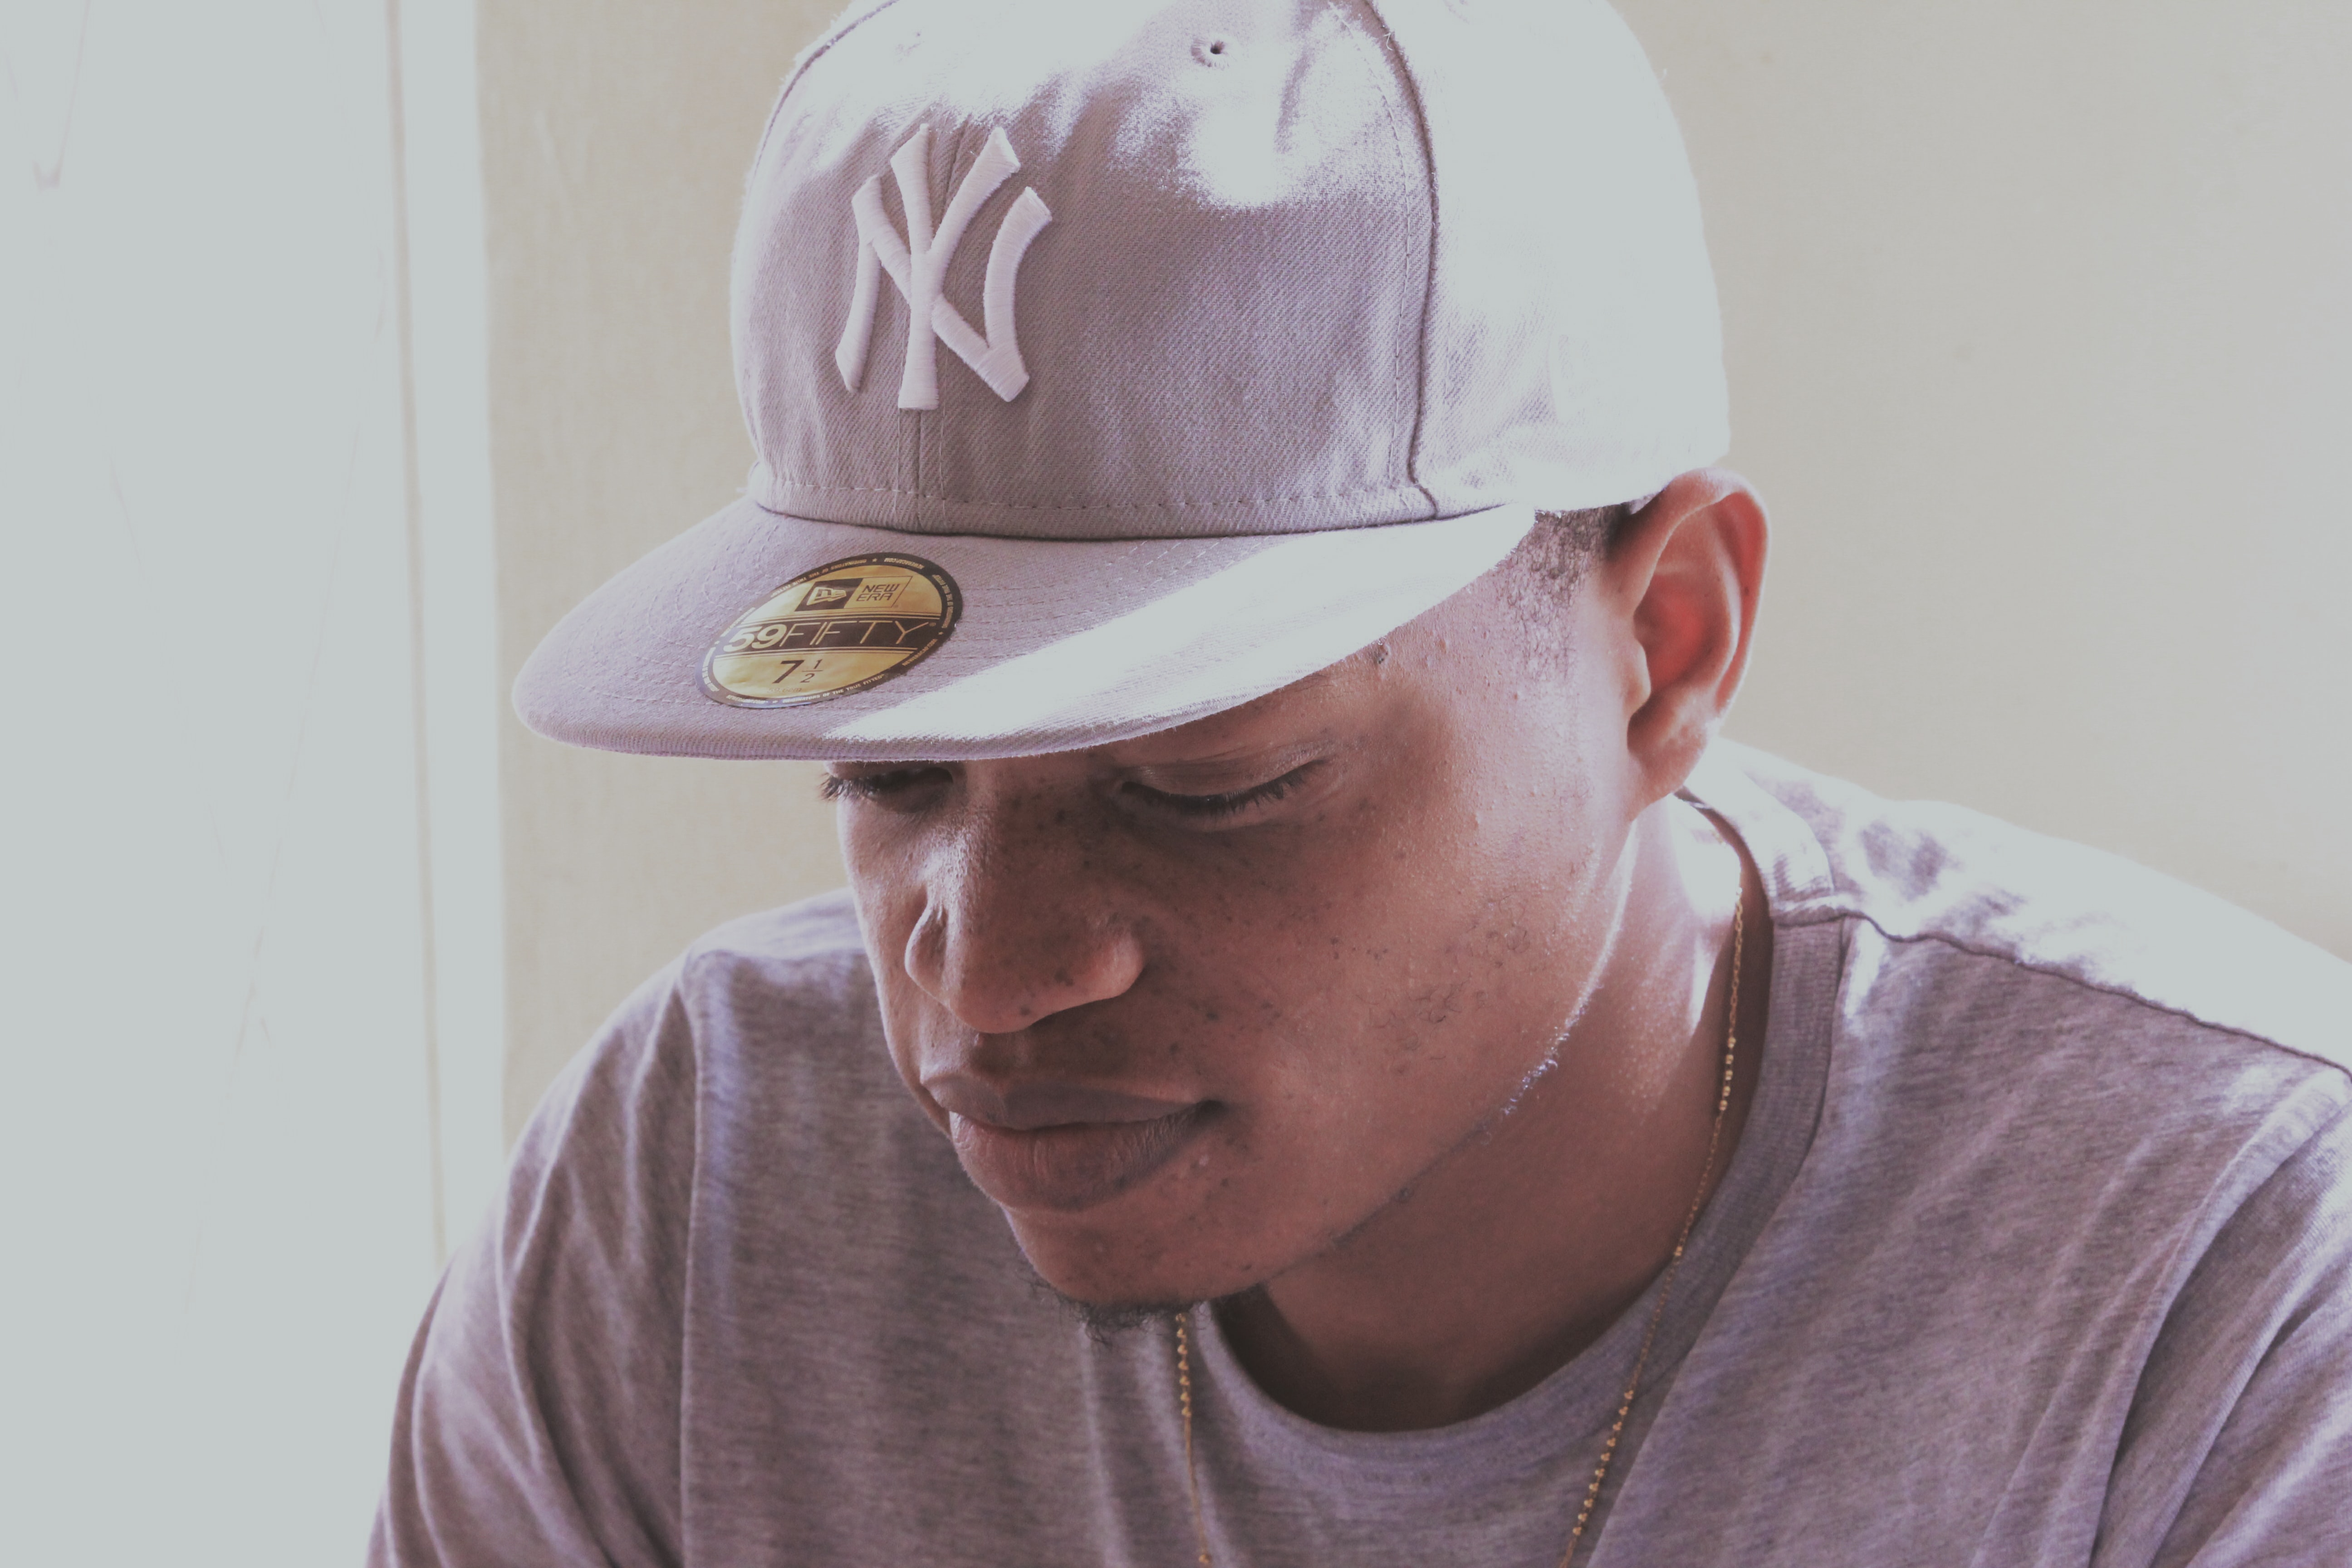 man wearing gray crew-neck shirt and fitted cap